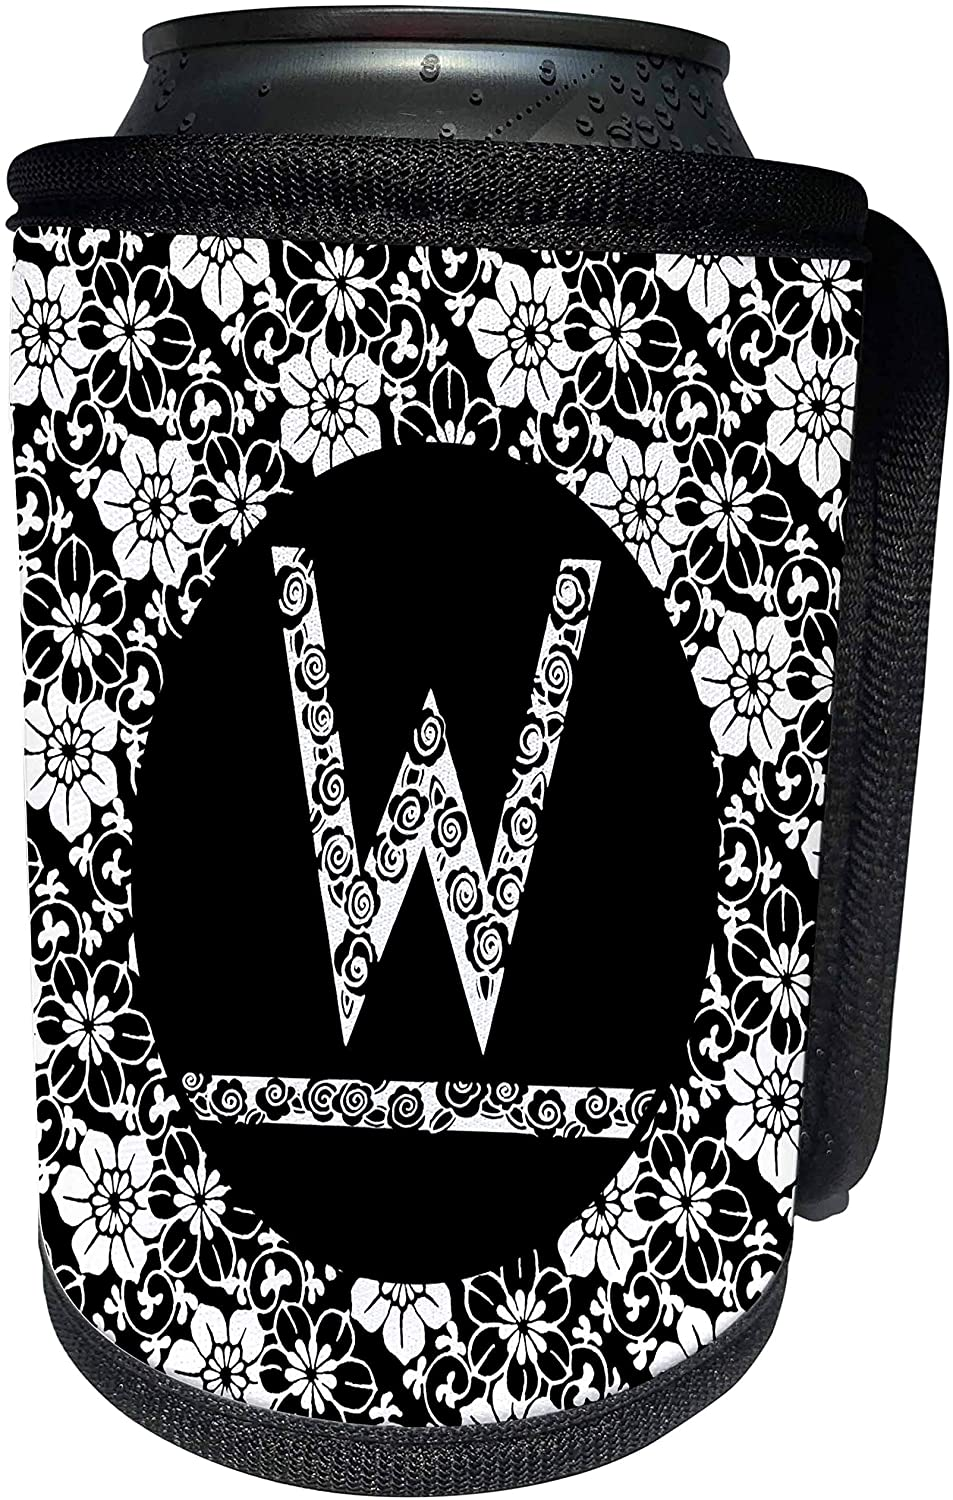 3dRose Russ Billington Monograms - Pretty Black and White Floral Monogram Letter W - Can Cooler Bottle Wrap (cc_241330_1)